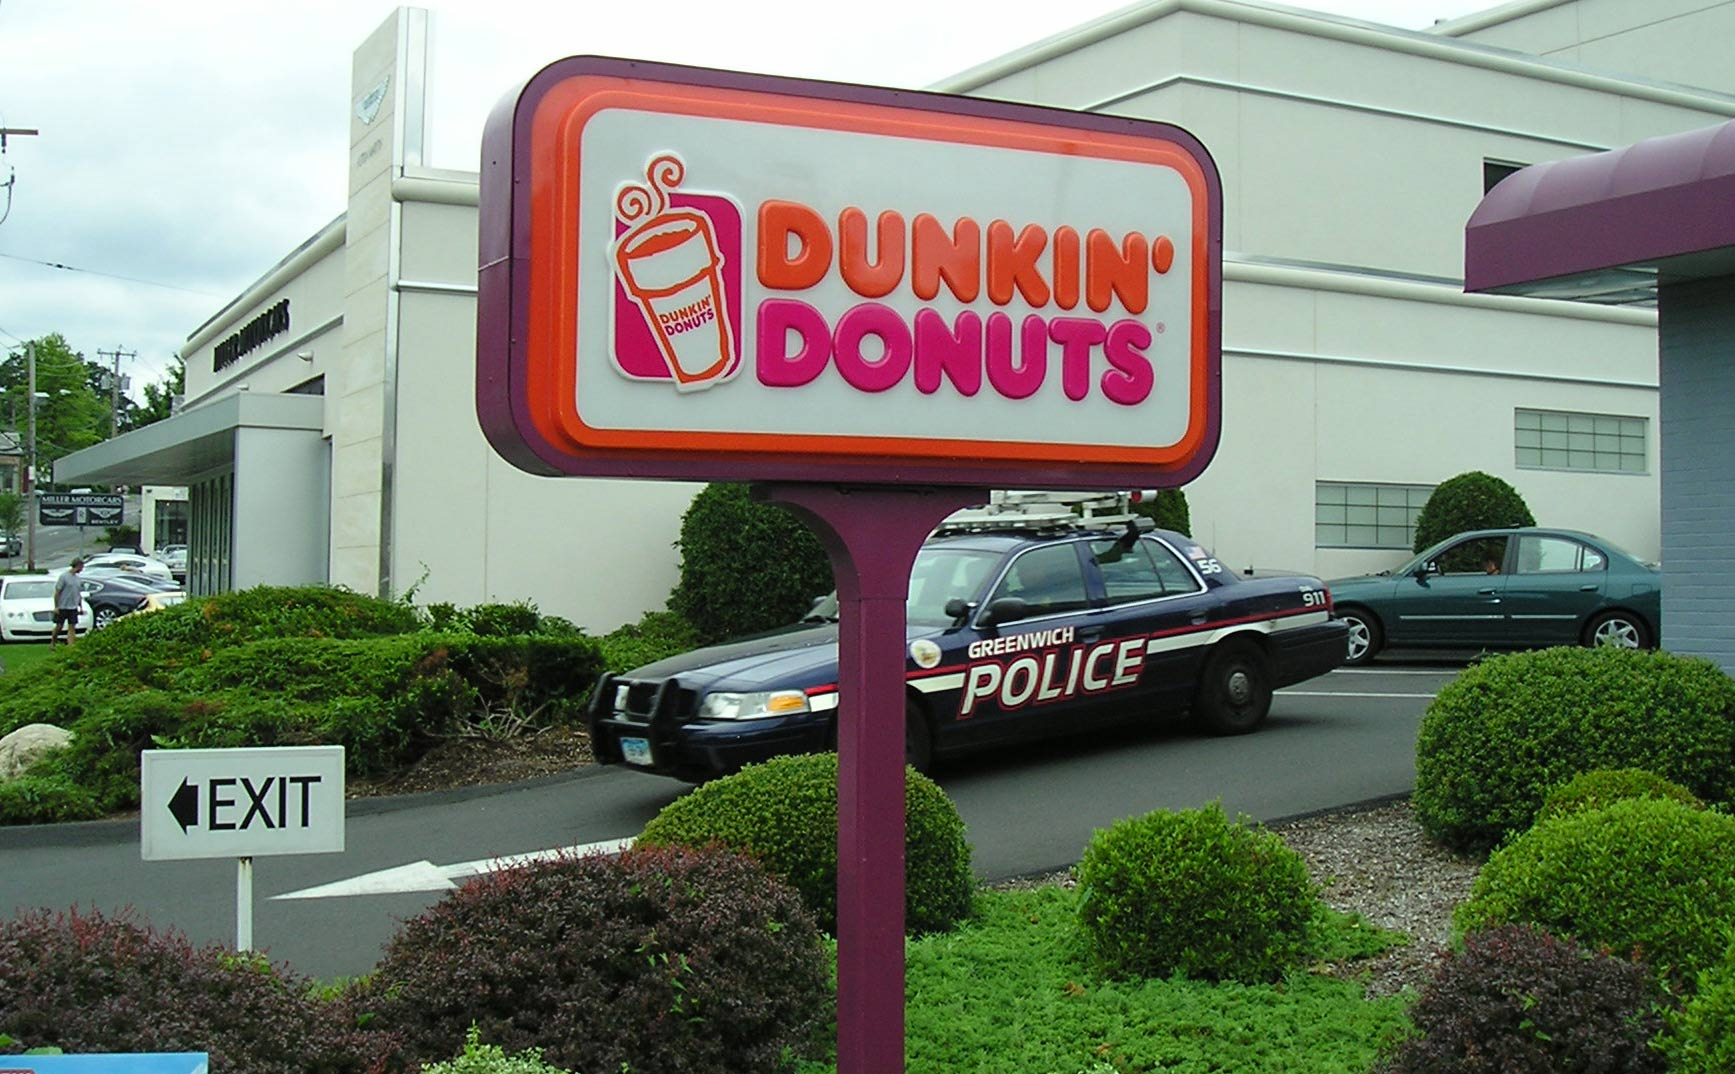 cop and donuts